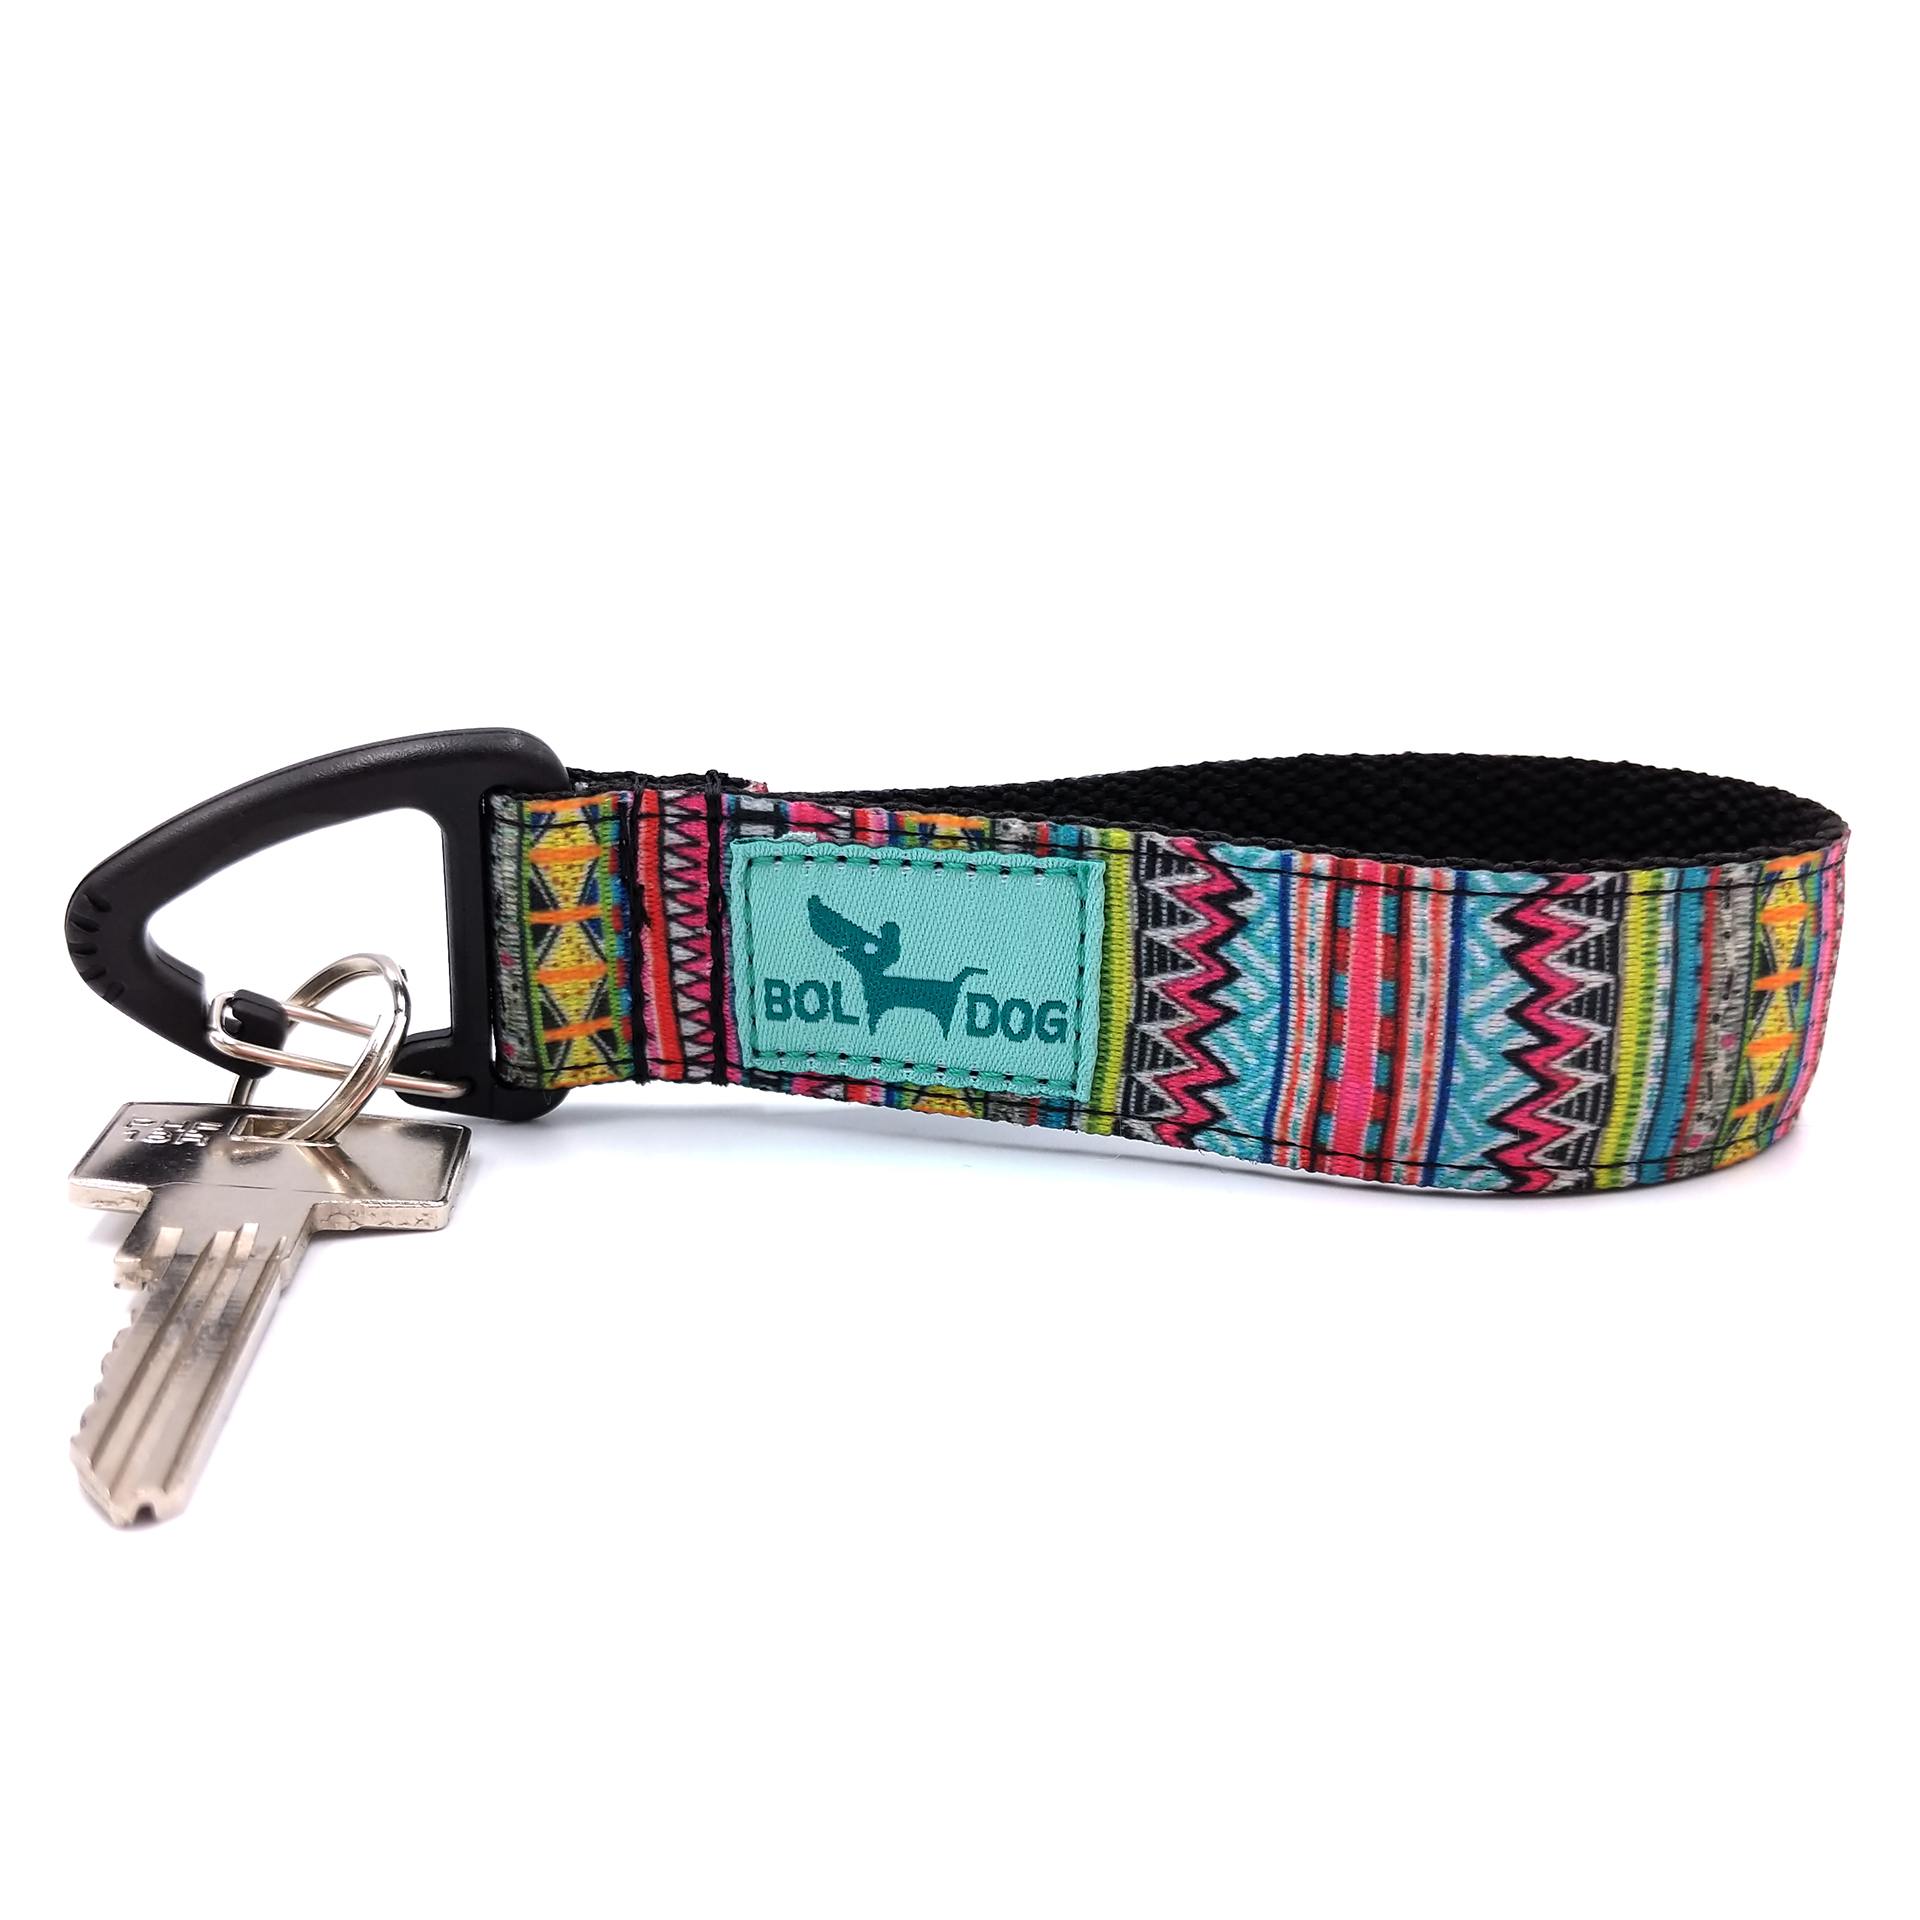 Inca key holder